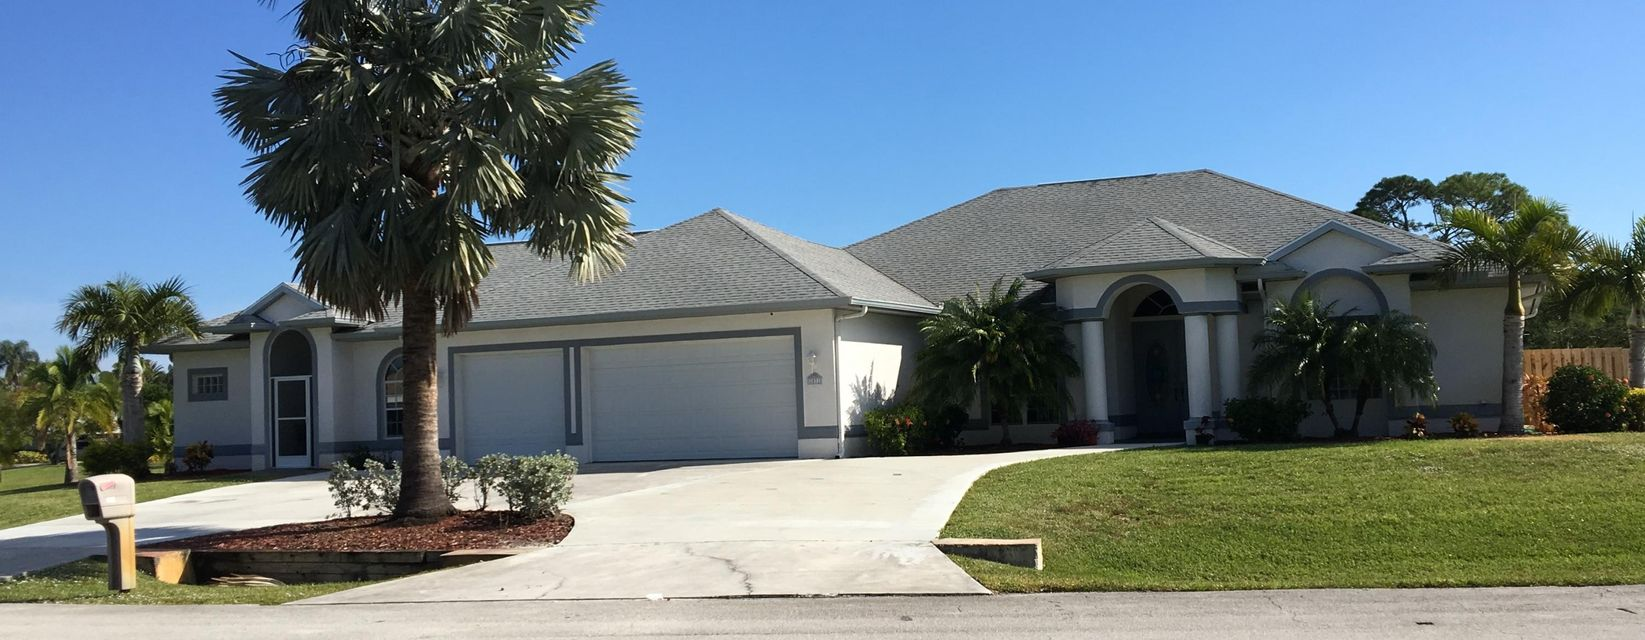 House for Sale at 2031 SE Elmhurst Road 2031 SE Elmhurst Road Port St. Lucie, Florida 34952 United States